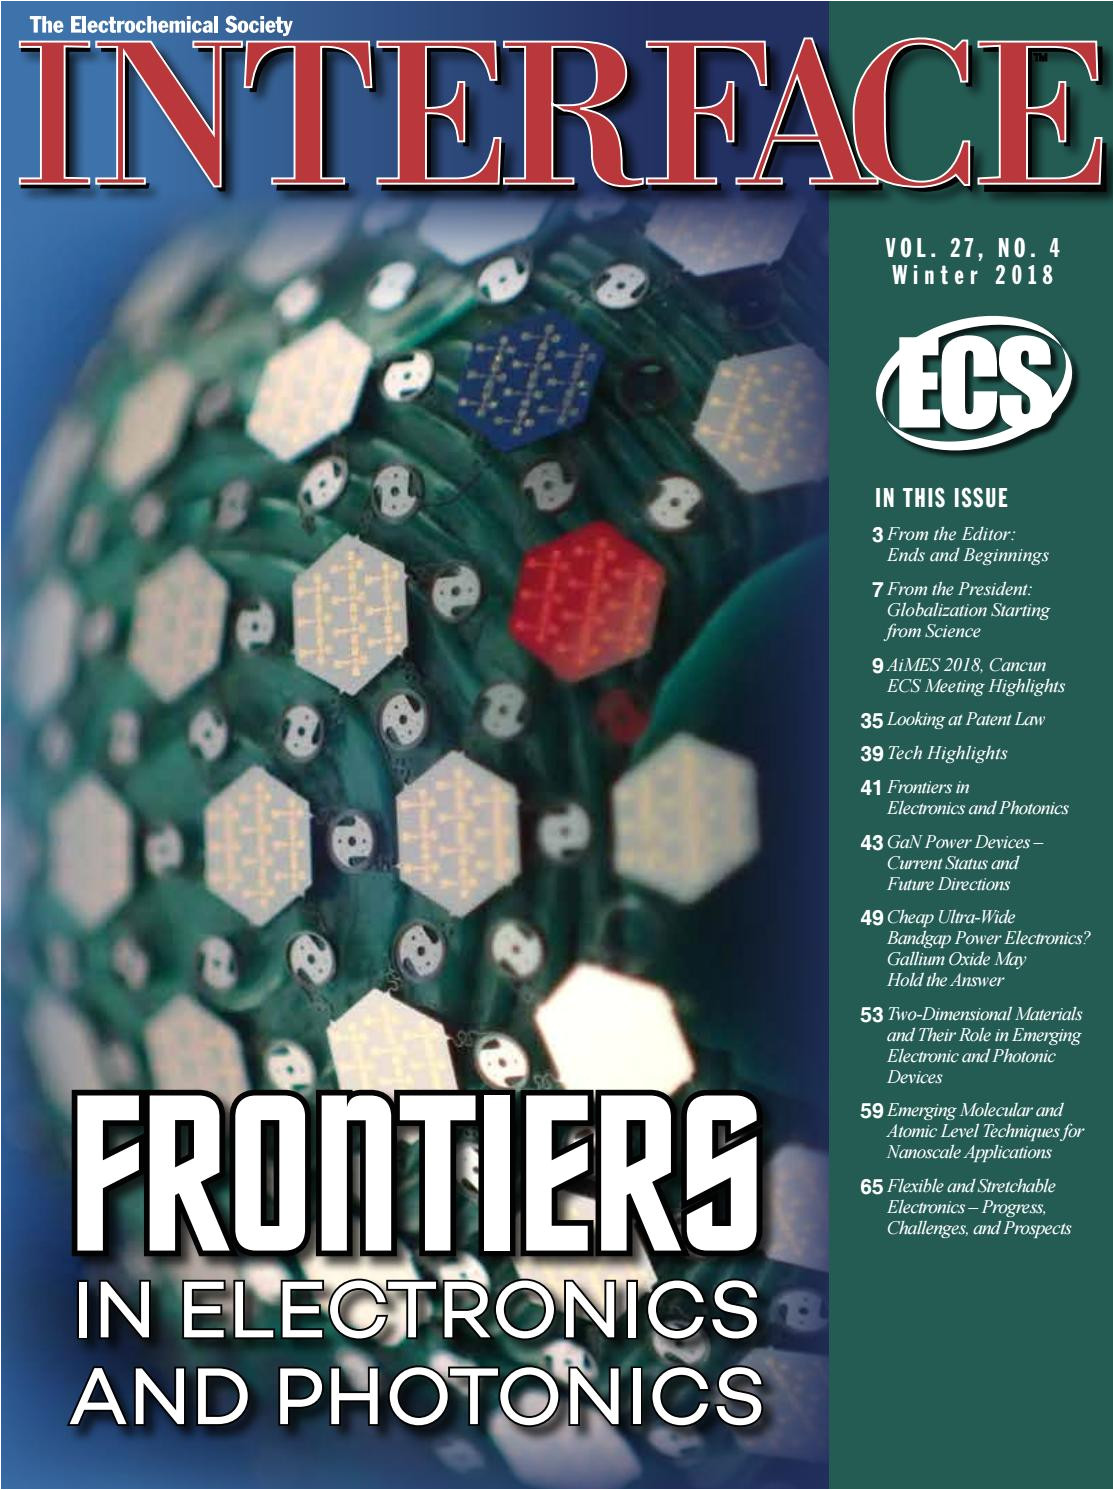 interface vol 27 no winter 2018 by the electrochemical society issuu